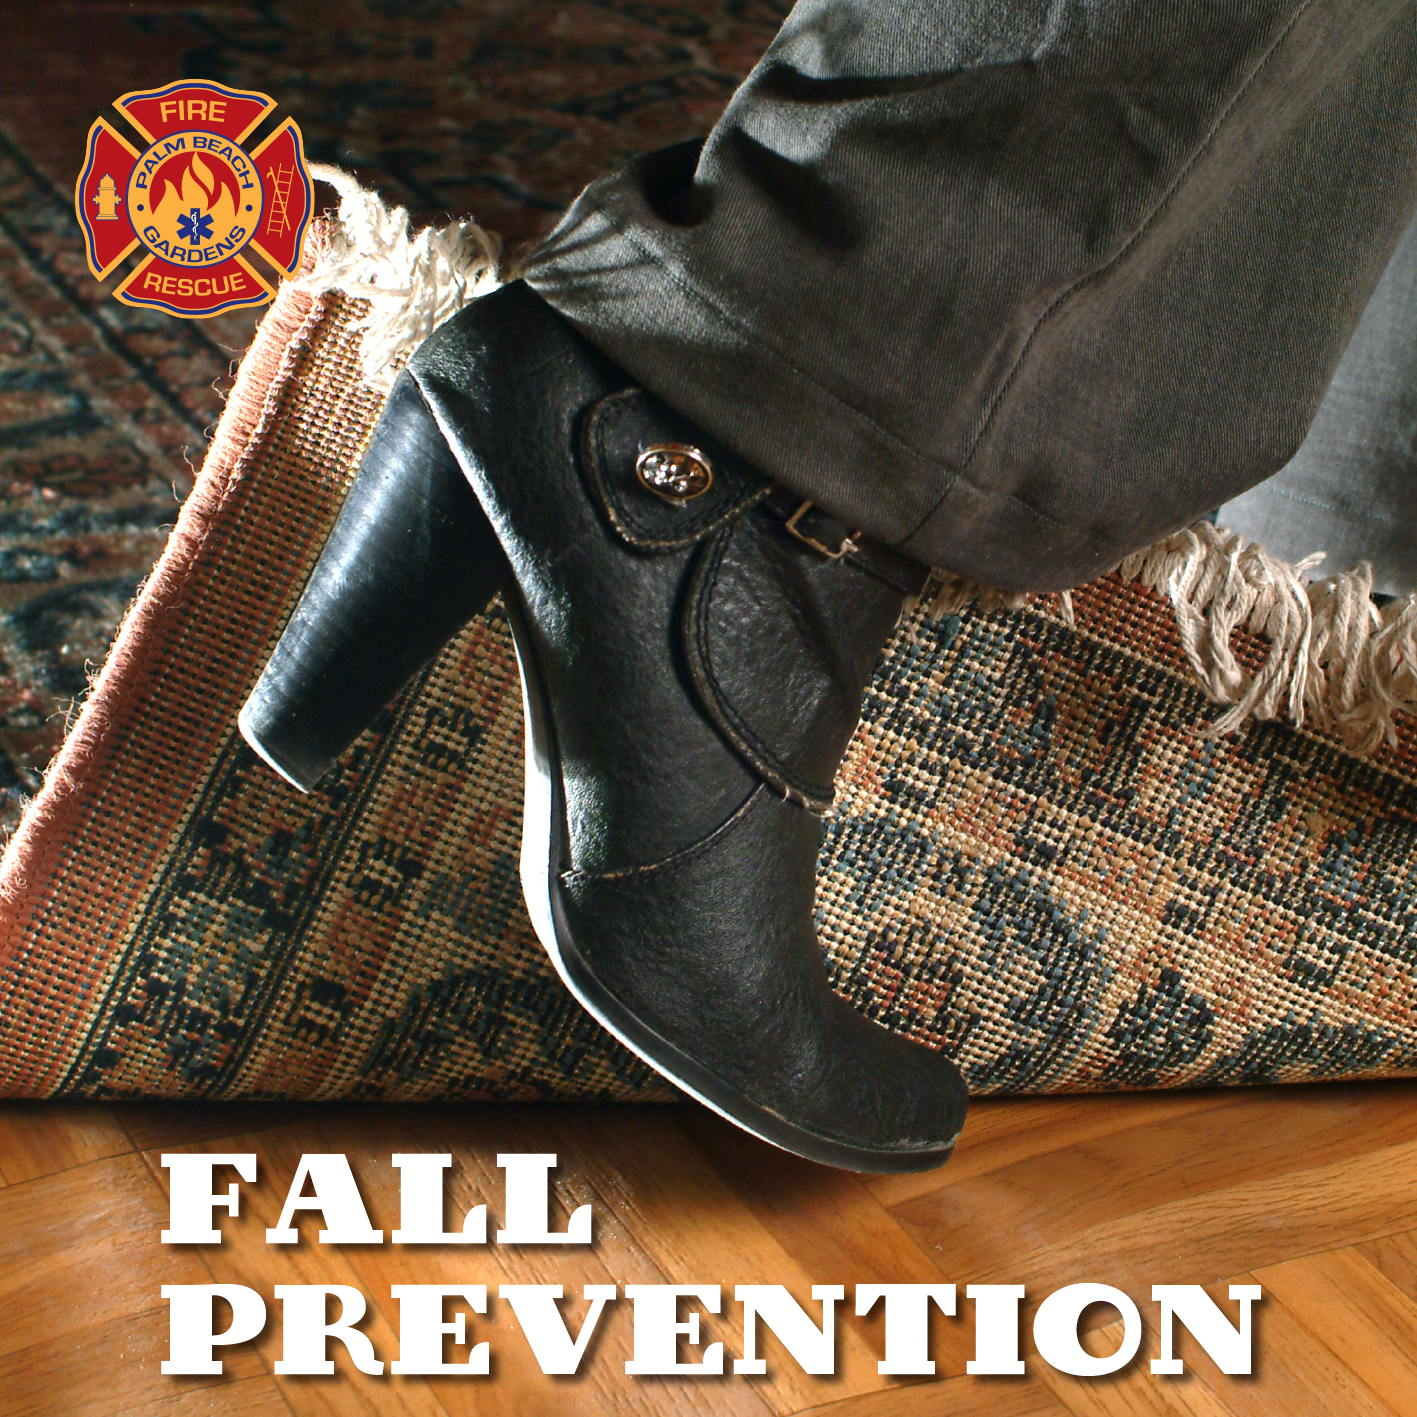 Palm Beach Gardens Fire Rescue. Fall Prevention. High-heel shoe tripping on rug.